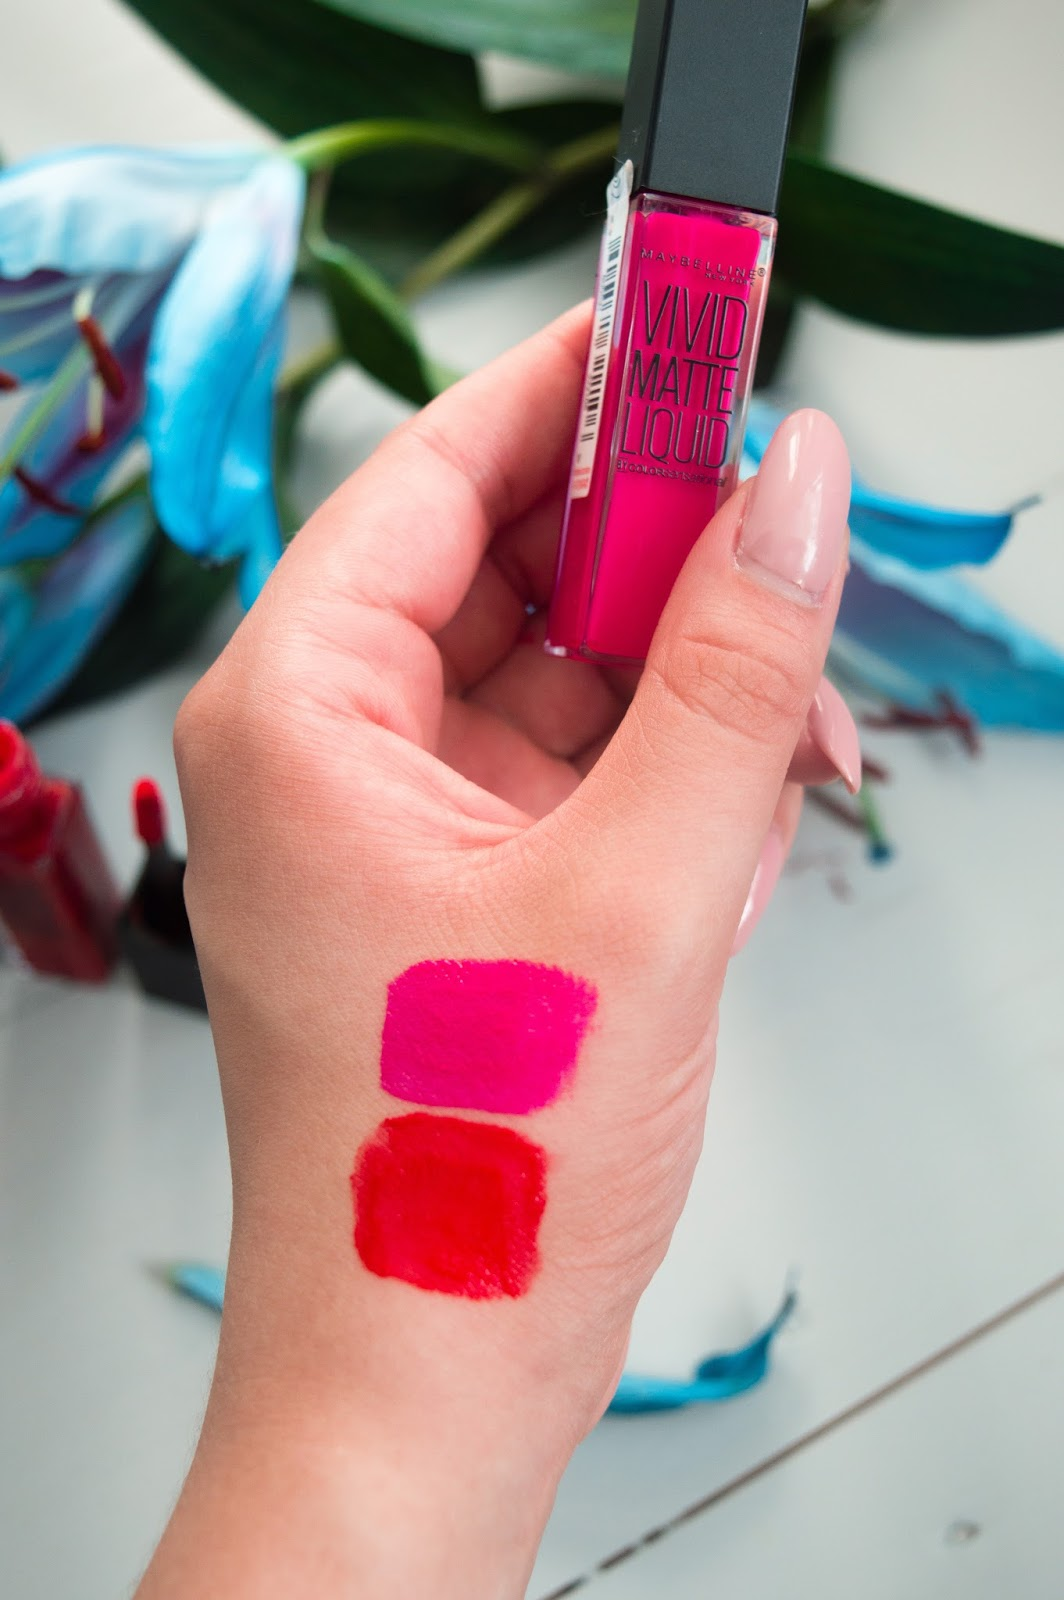 maybelline vivid matte liquid review